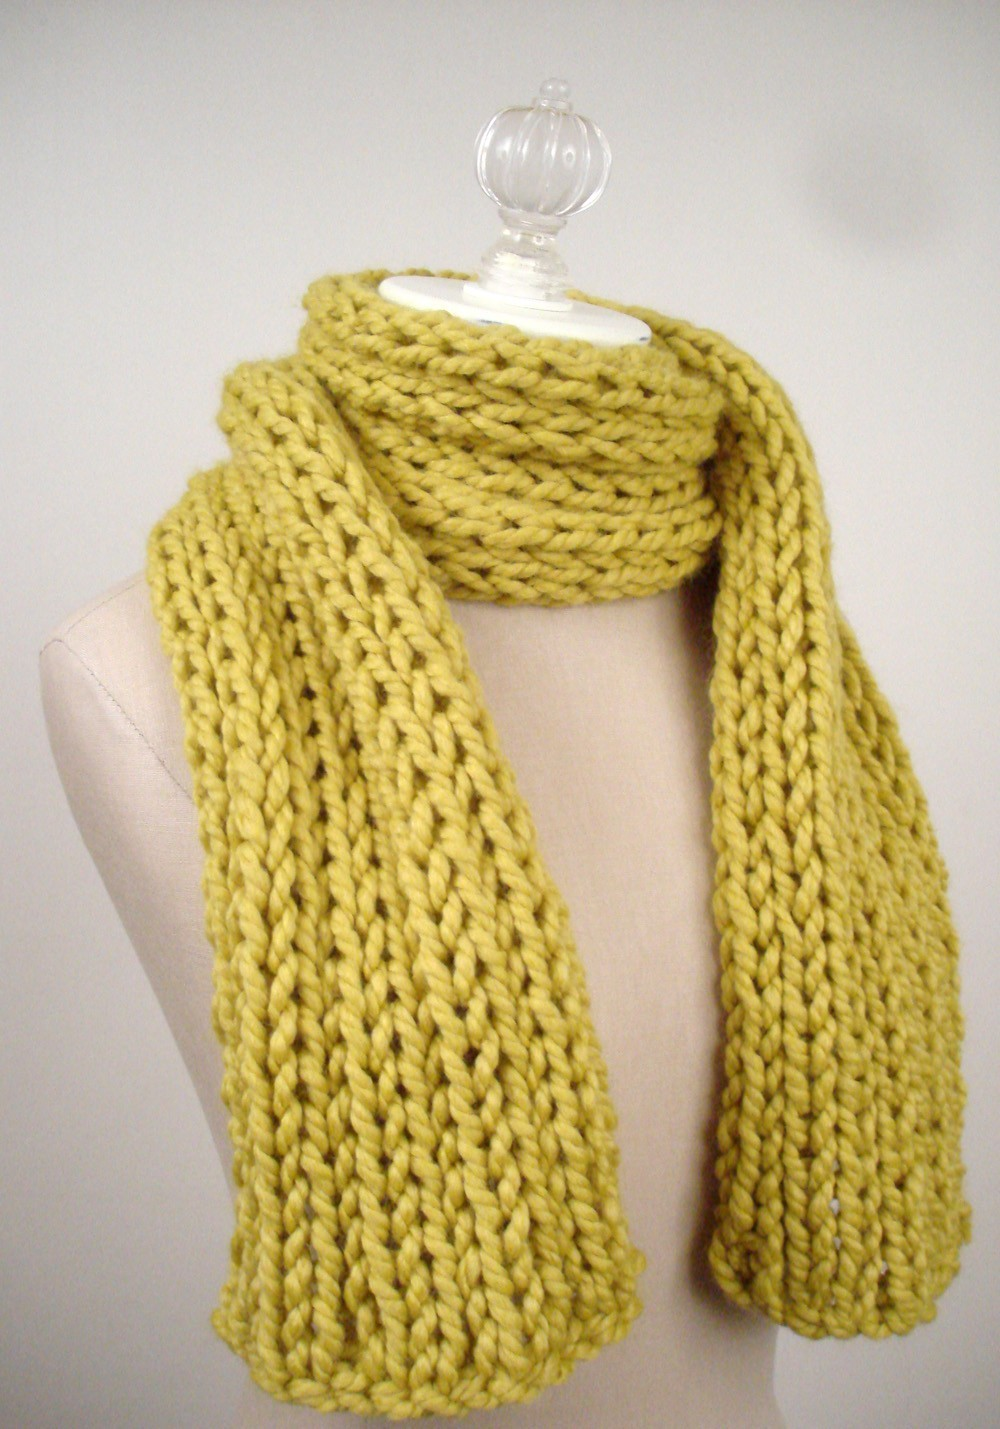 Knitting Patterns For Women s Scarf : Scarf Knitting Patterns A Knitting Blog